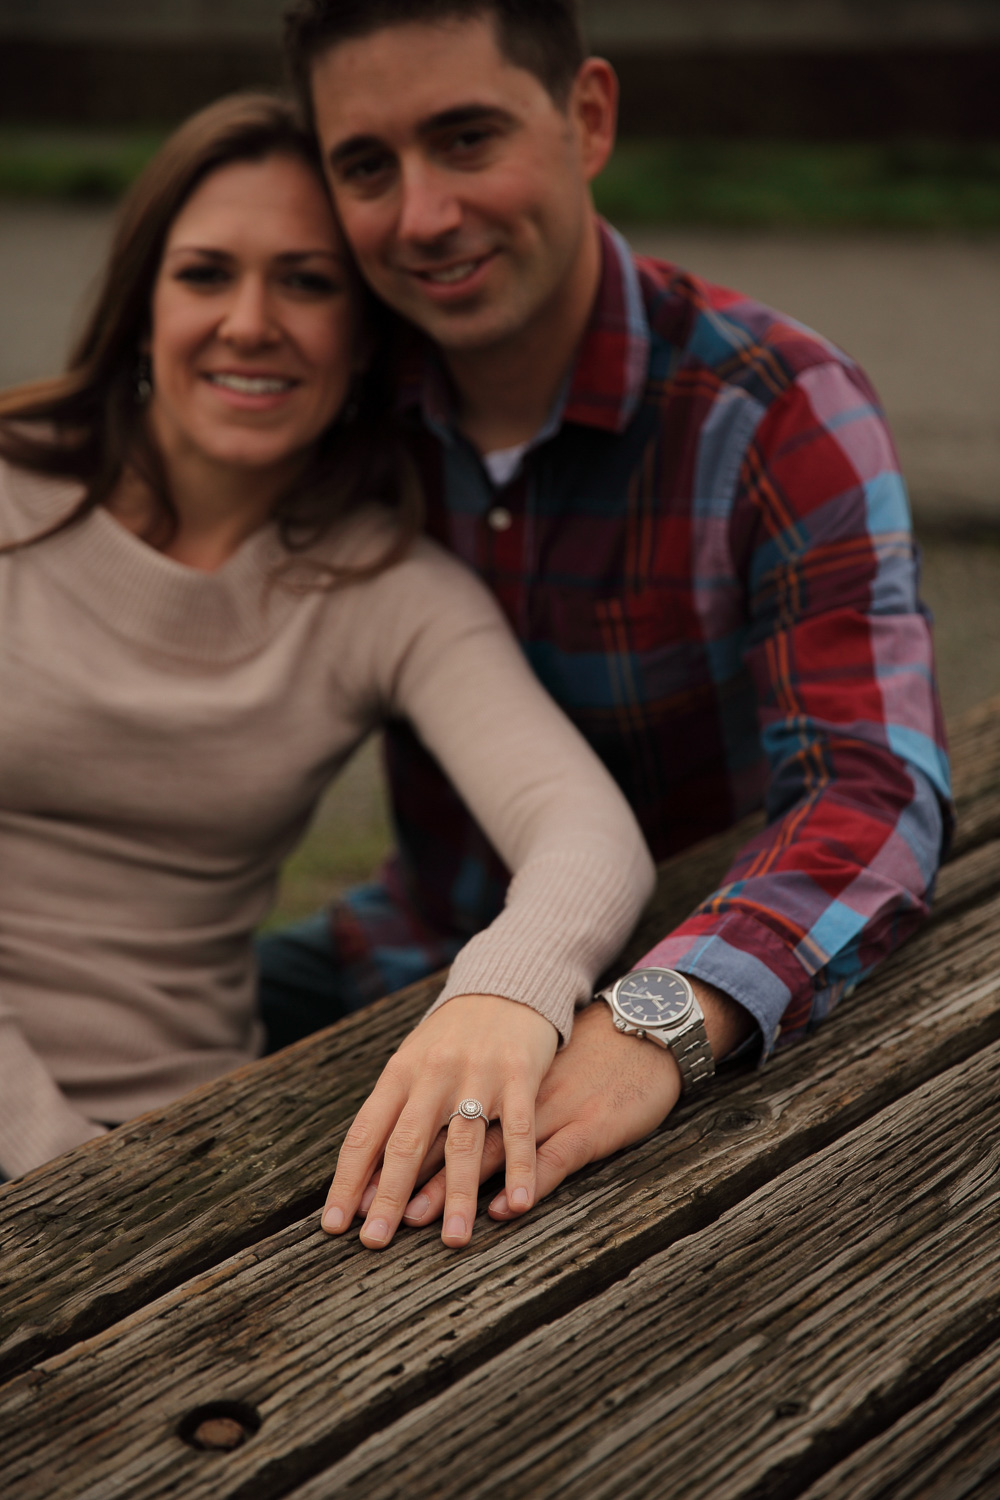 Engagement+Photos+Willows+Lodge+Woodinville+Washington03.jpg